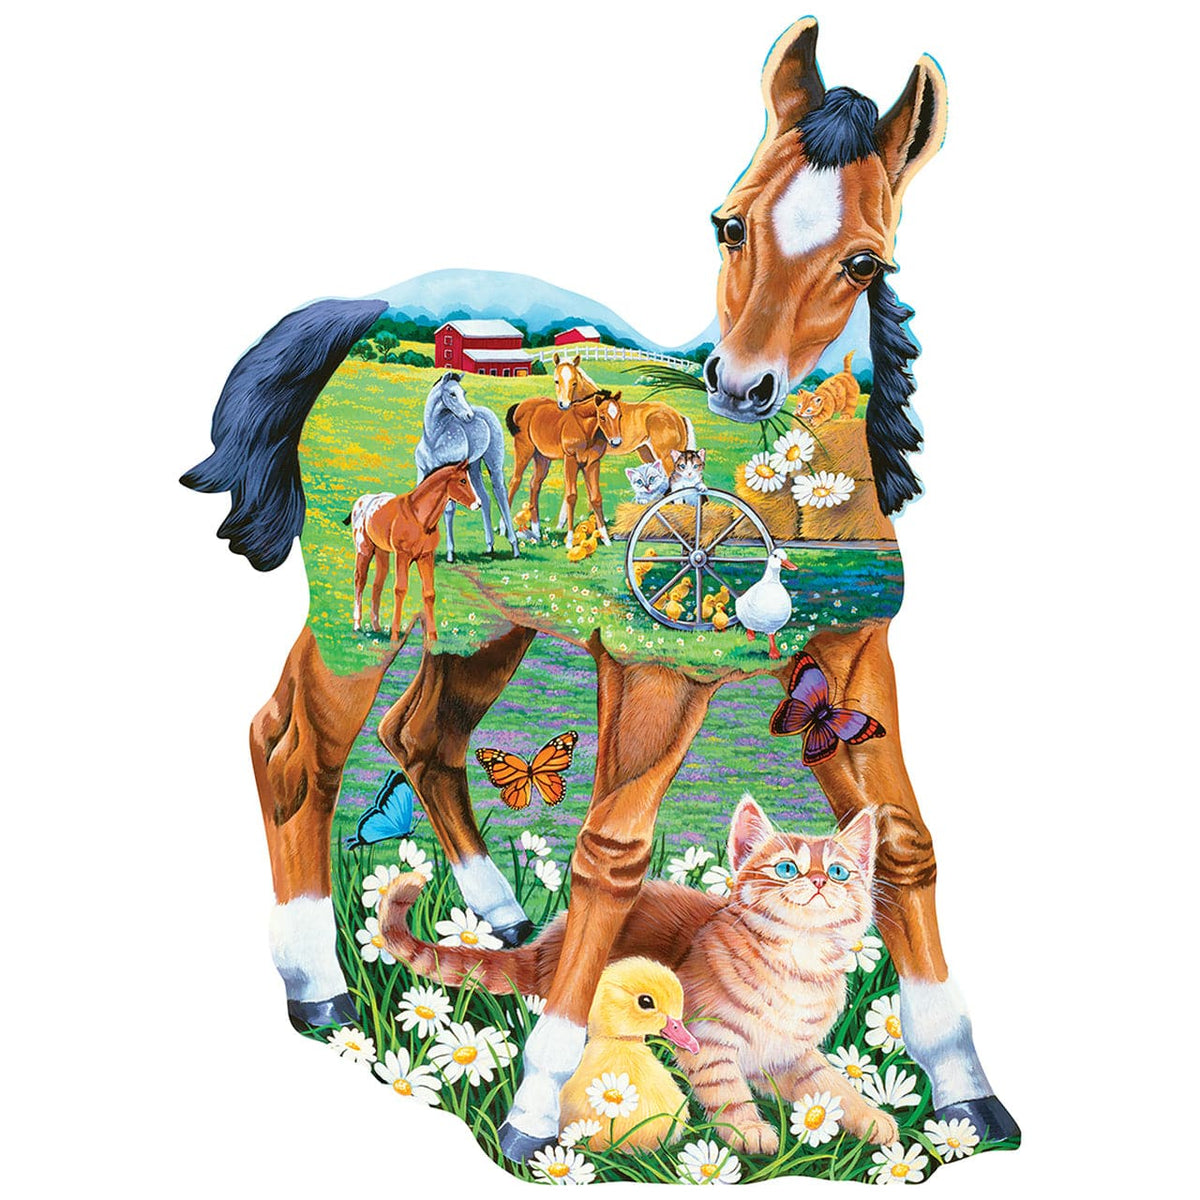 Pony Playtime Shaped Jigsaw Puzzle - 100 Piece Puzzle